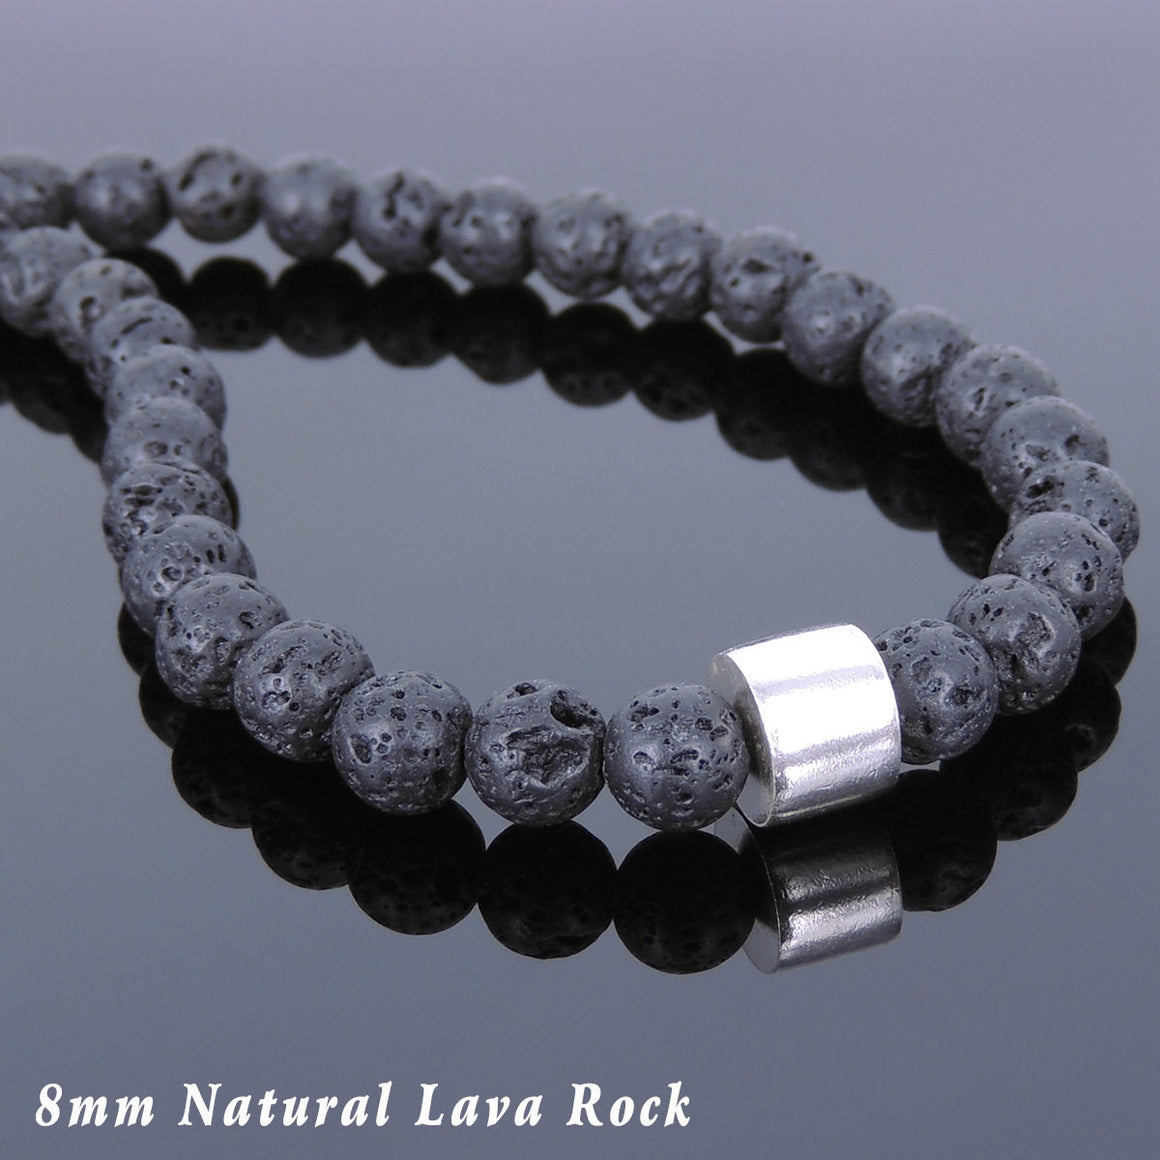 8mm Lava Rock Healing Stone Necklace with S925 Sterling Silver Simple Protection Barrel Bead & S-Hook Clasp - Handmade by Gem & Silver NK111